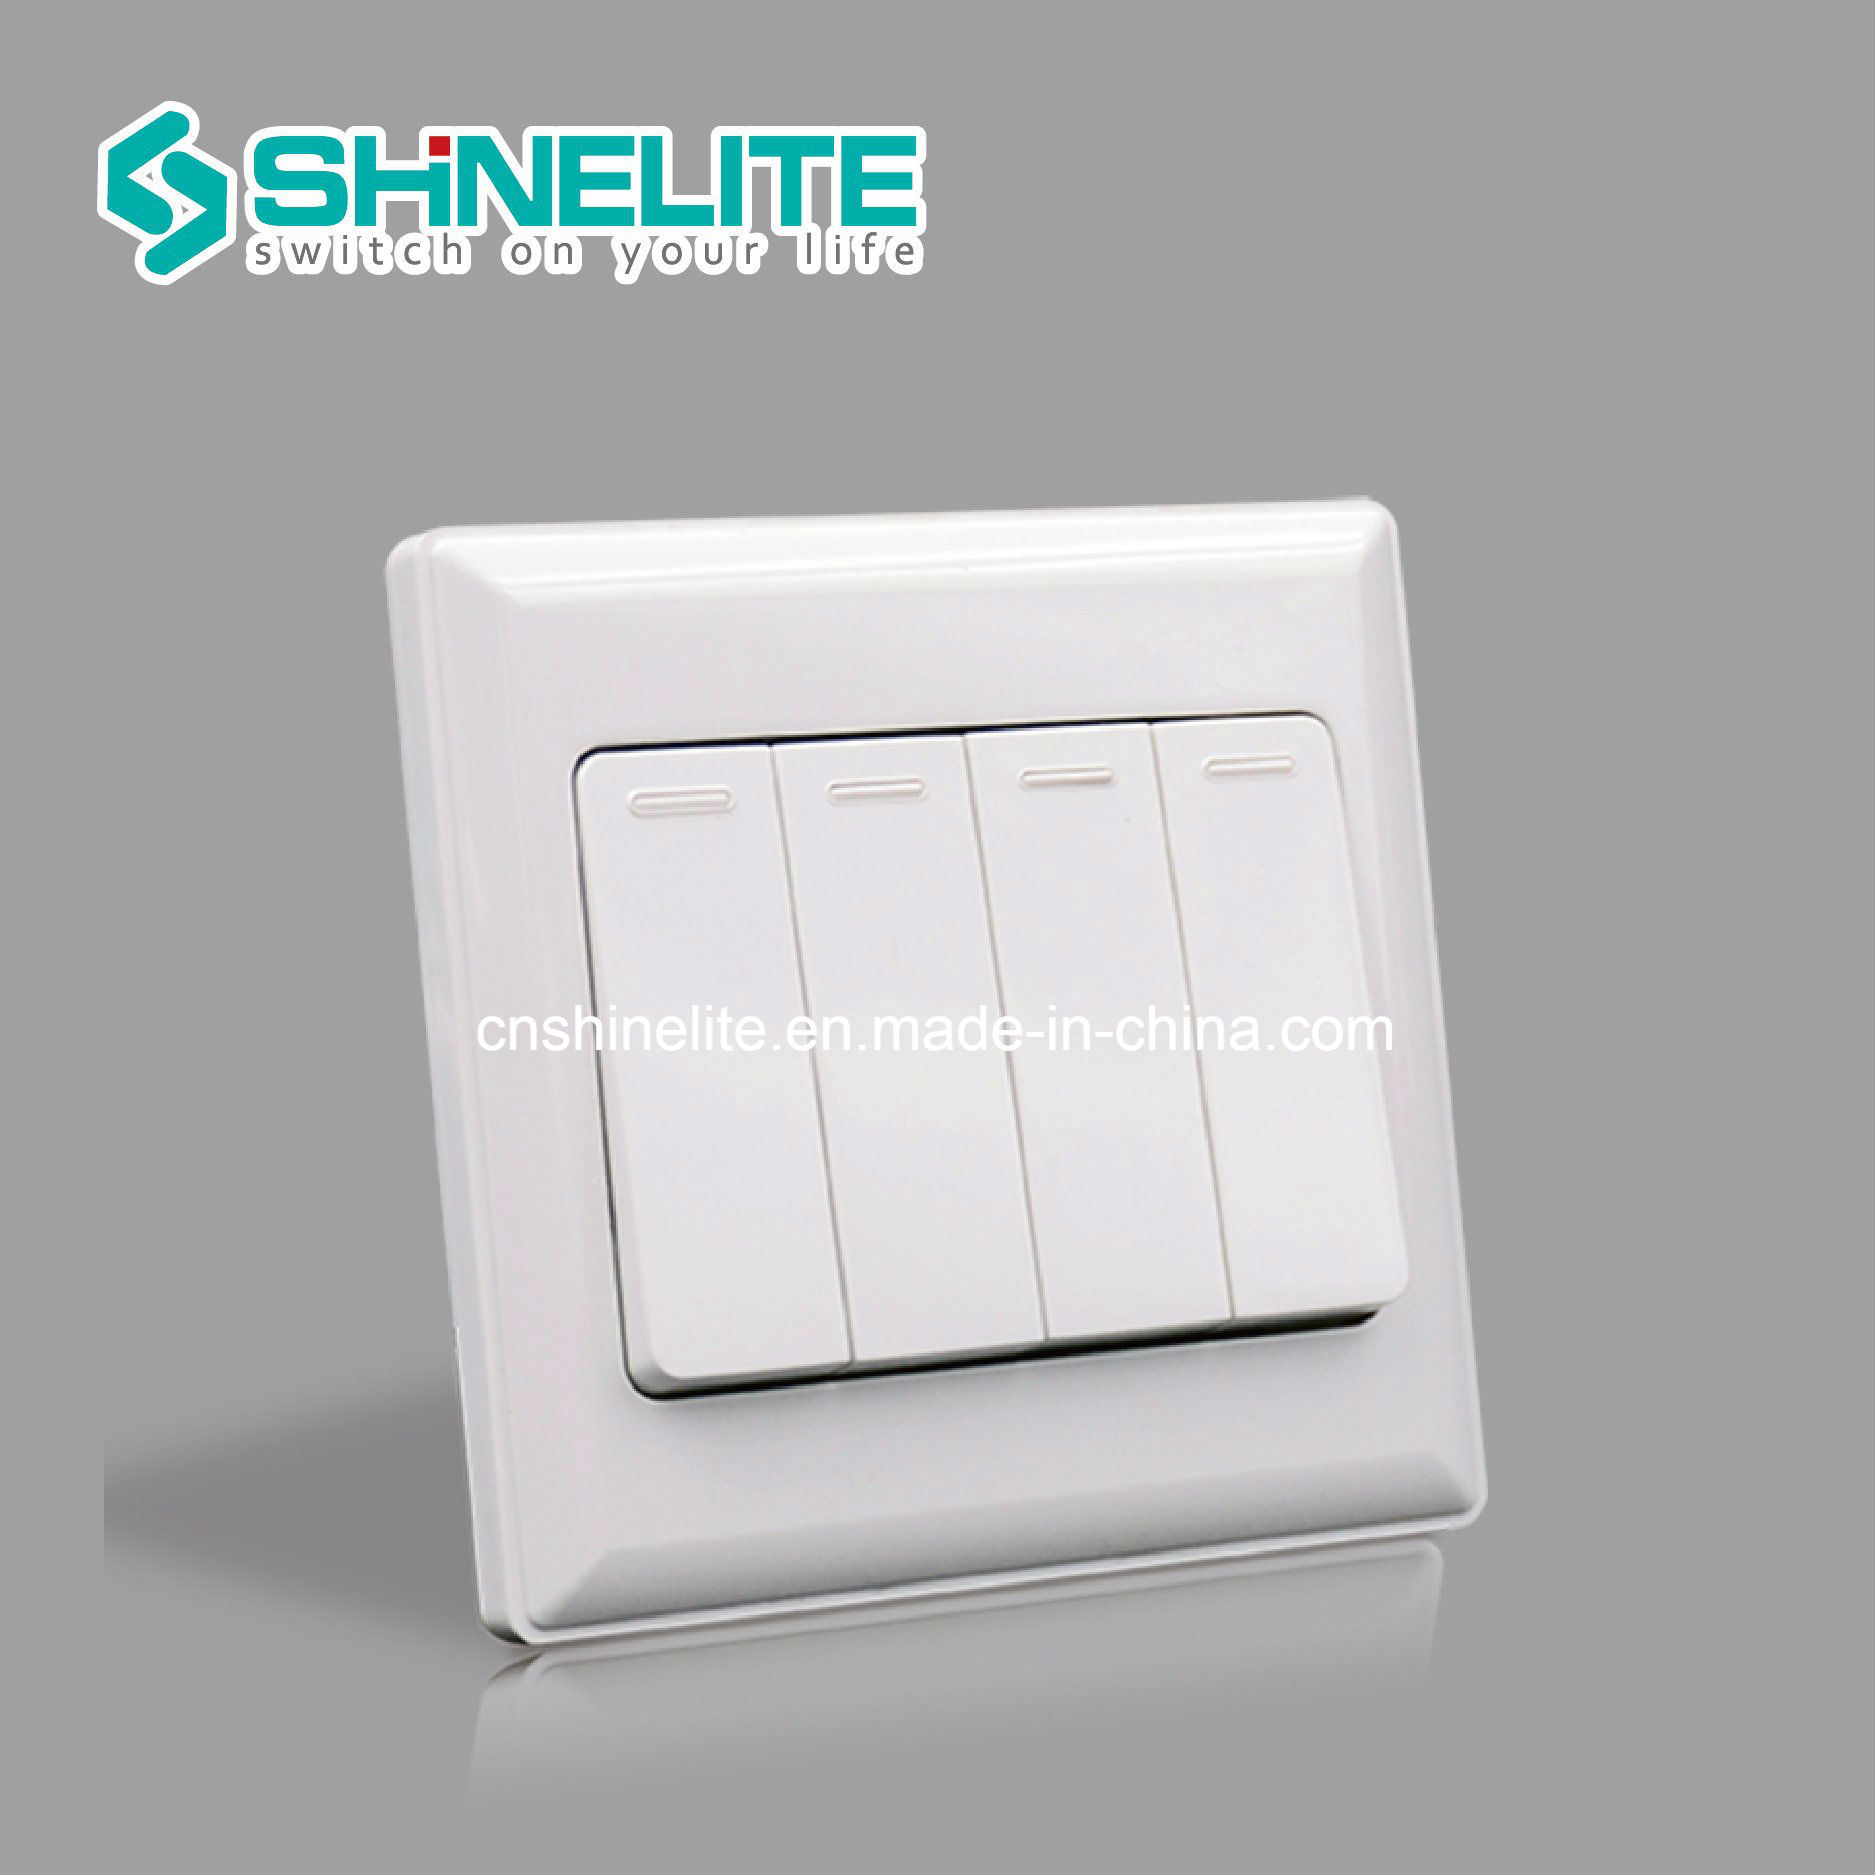 China Four Gang Switch 2 Way Wall Switch of High Quality - China ...